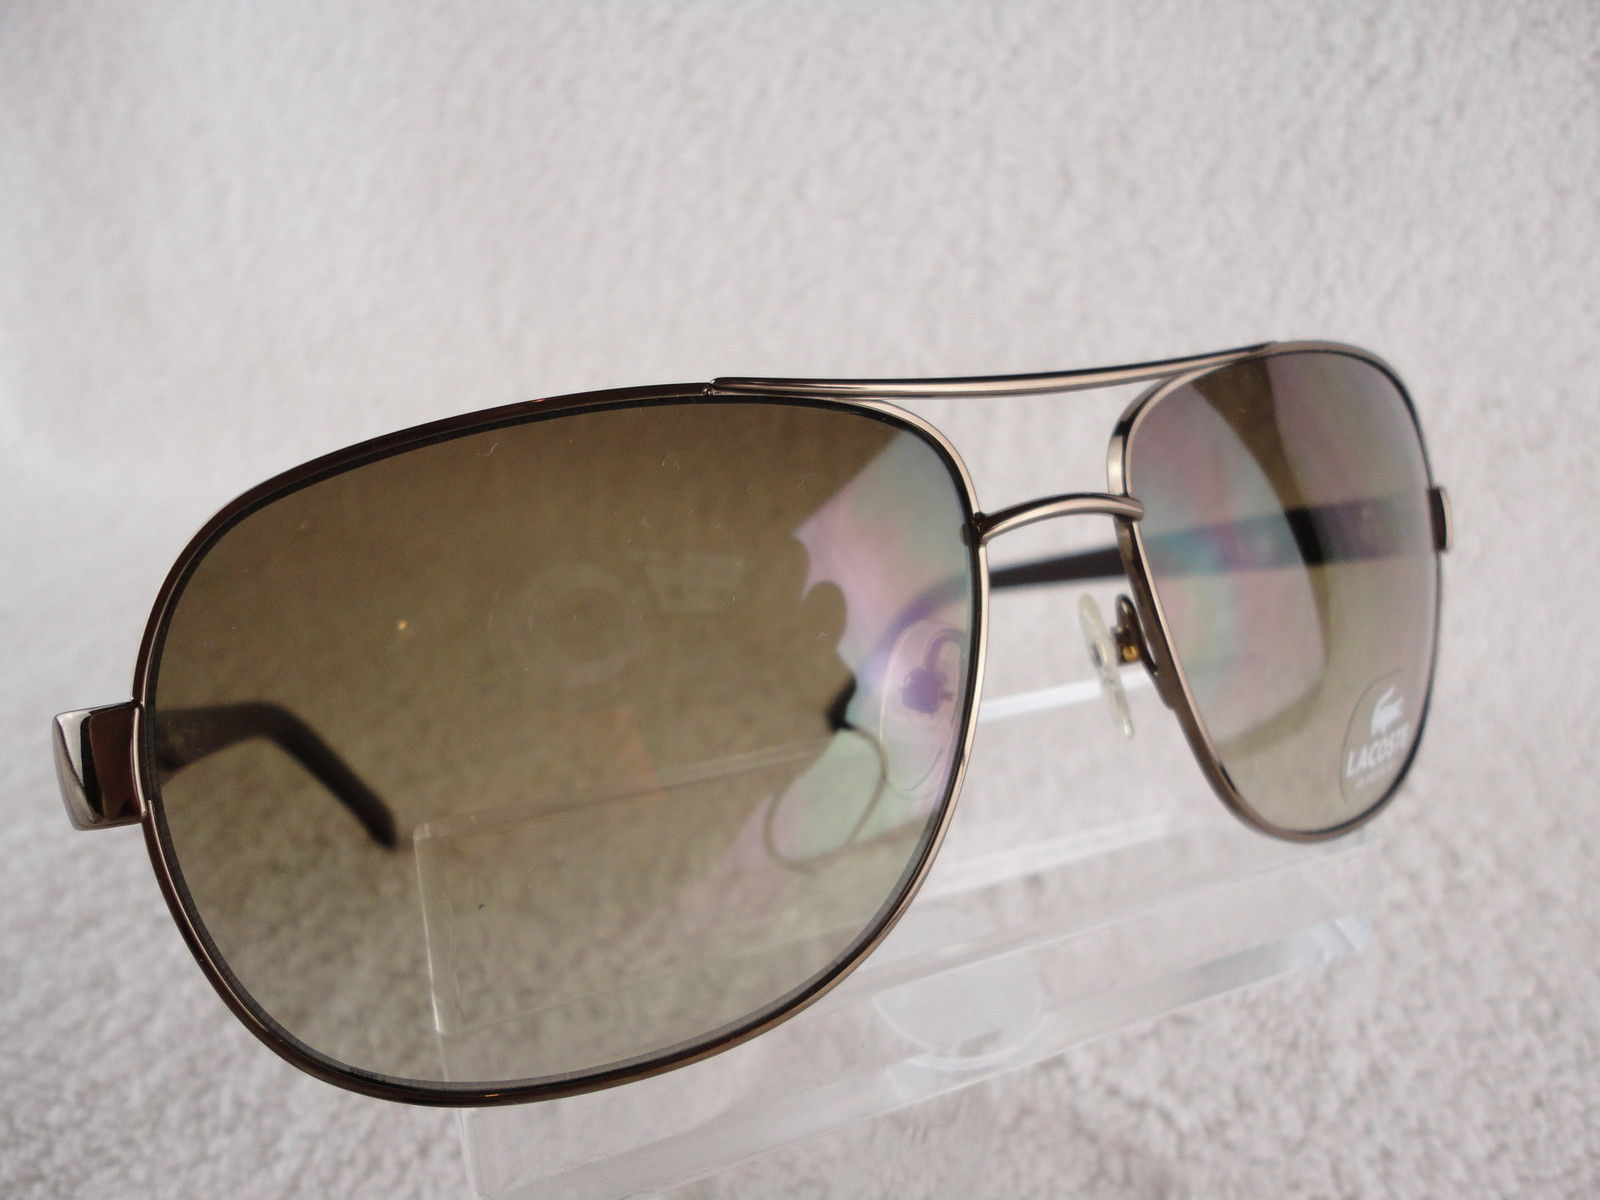 296c588b4865 Lacoste L138 S (210) Shiny Brown 60X15 135mm and 37 similar items